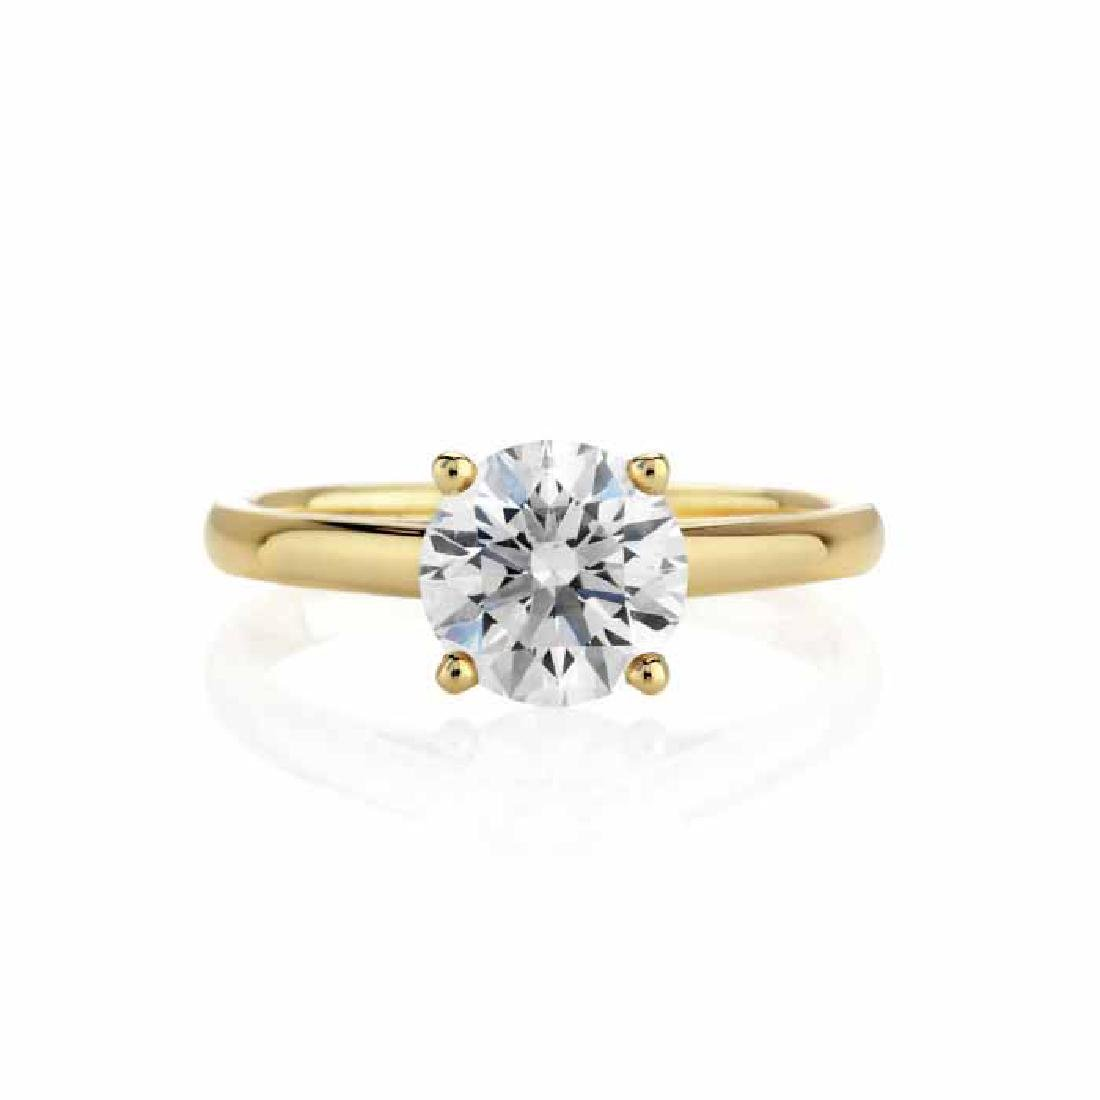 CERTIFIED 0.71 CTW D/VS1 ROUND DIAMOND SOLITAIRE RING I